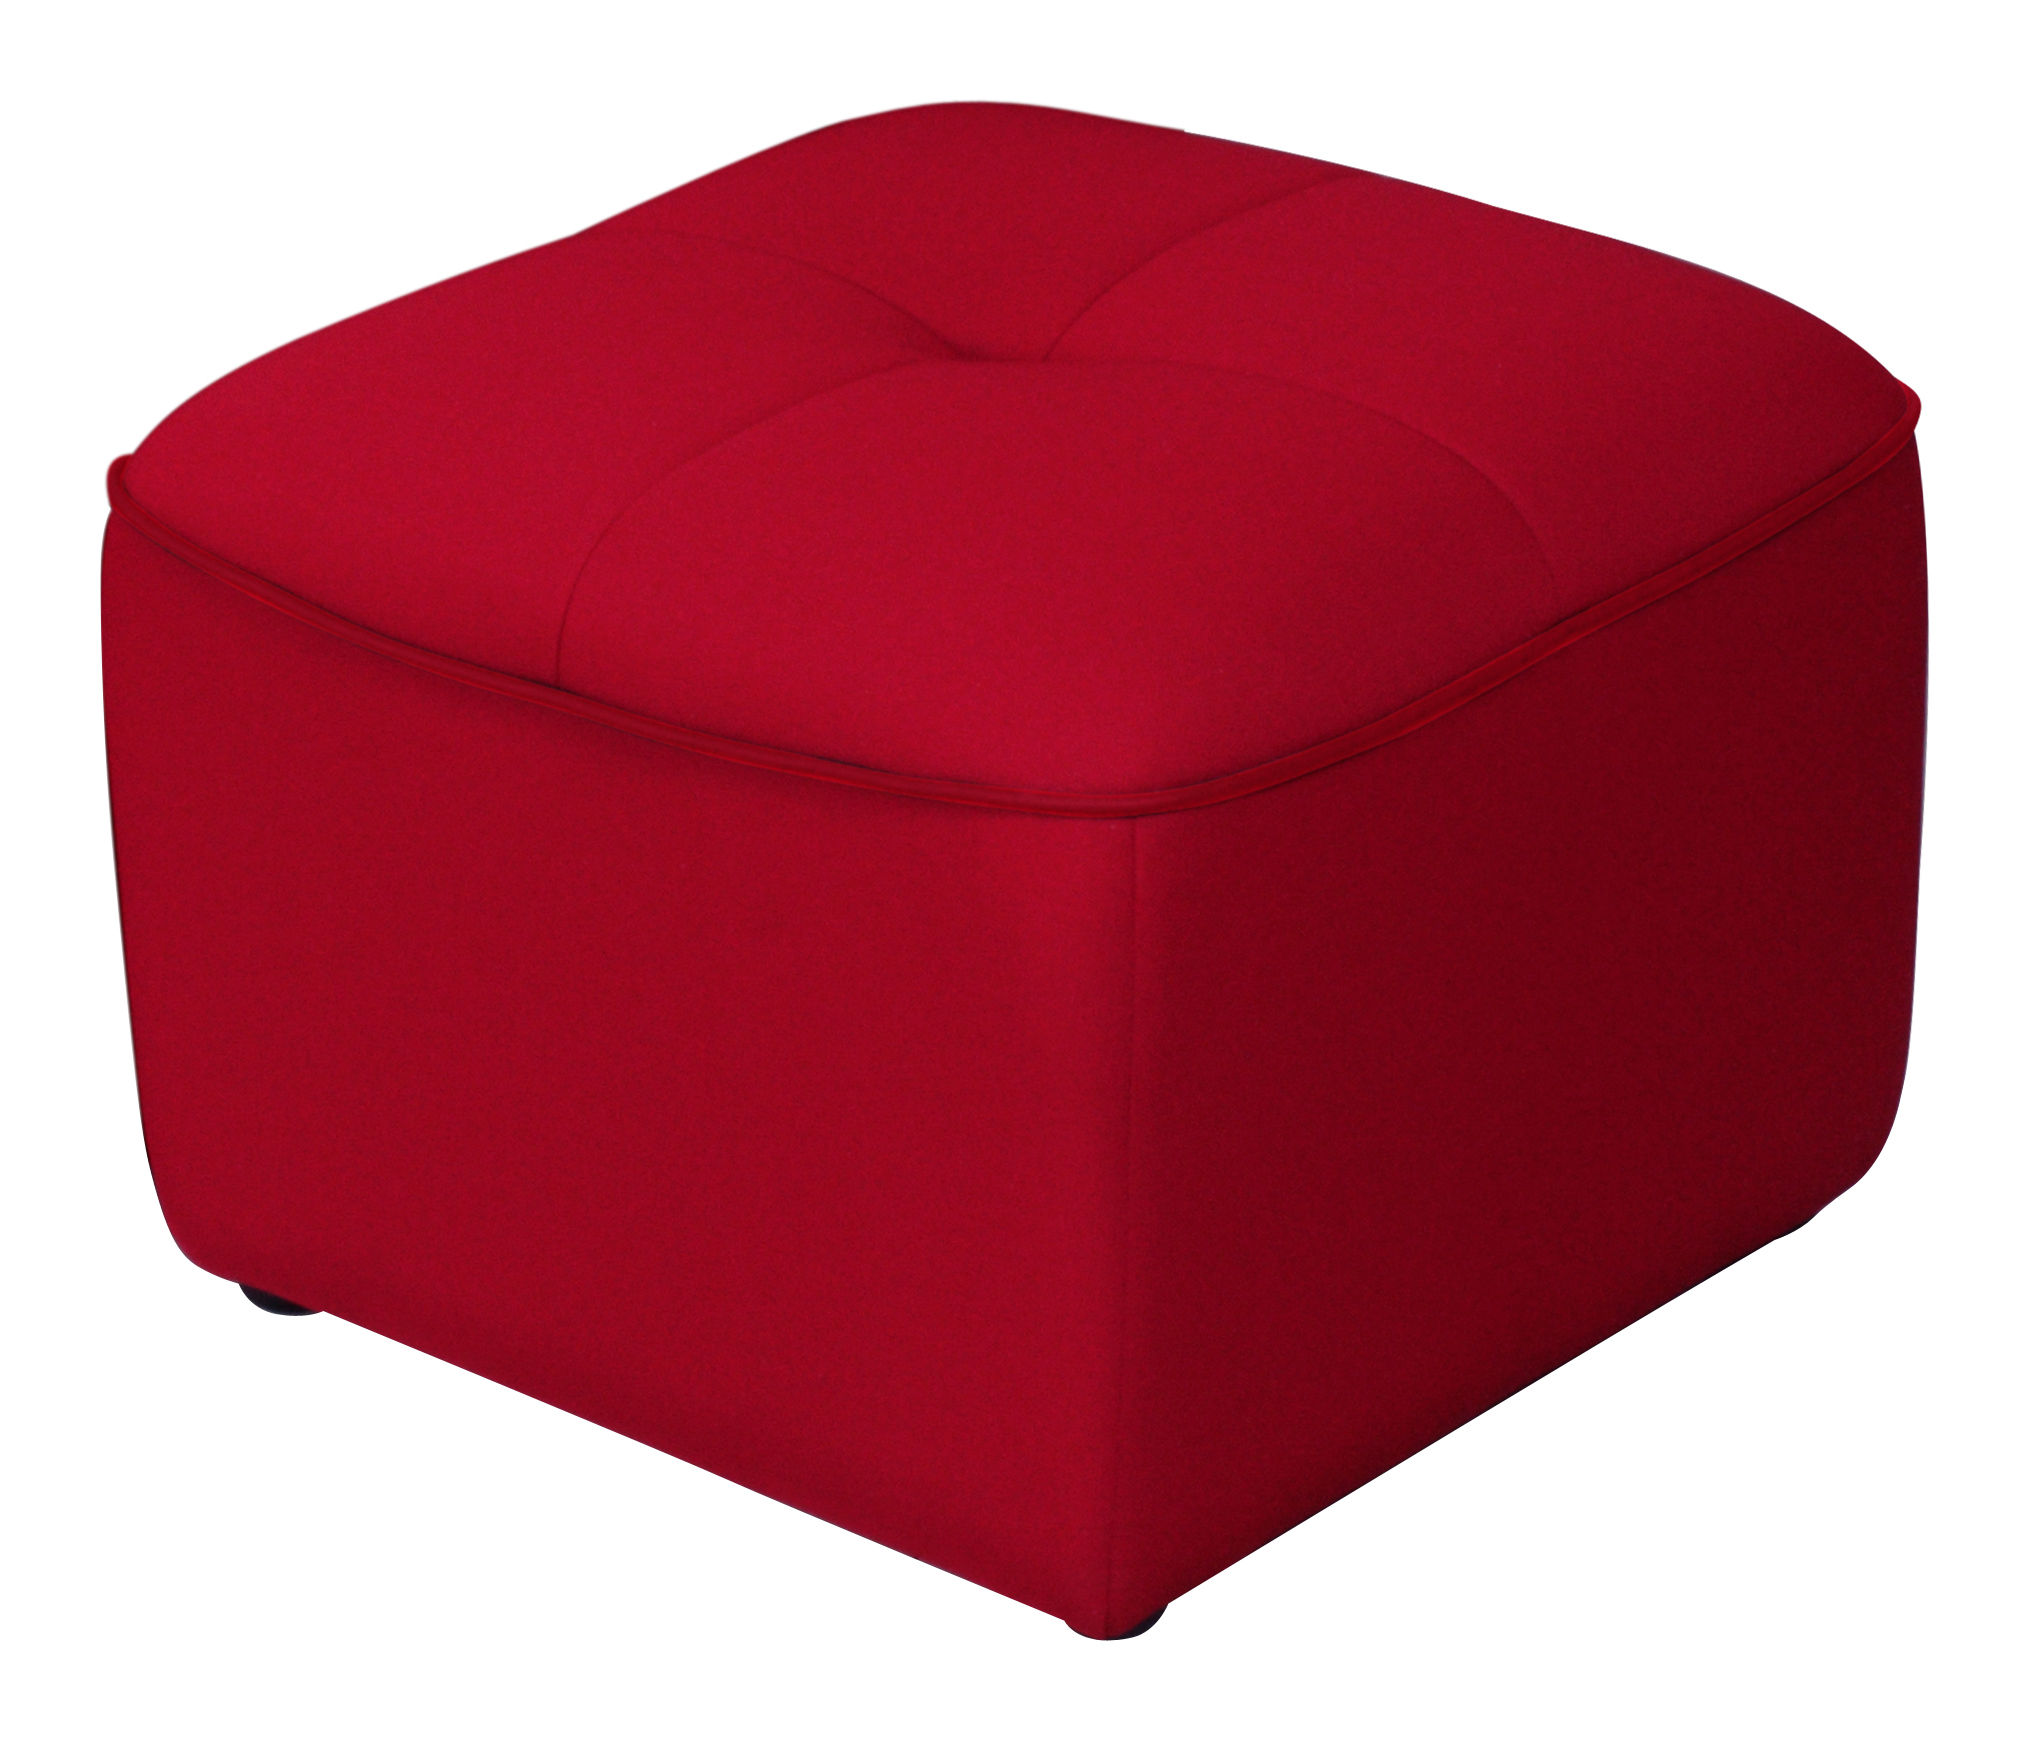 pouf chesty by ora ito rouge passepoil rouge dunlopillo. Black Bedroom Furniture Sets. Home Design Ideas